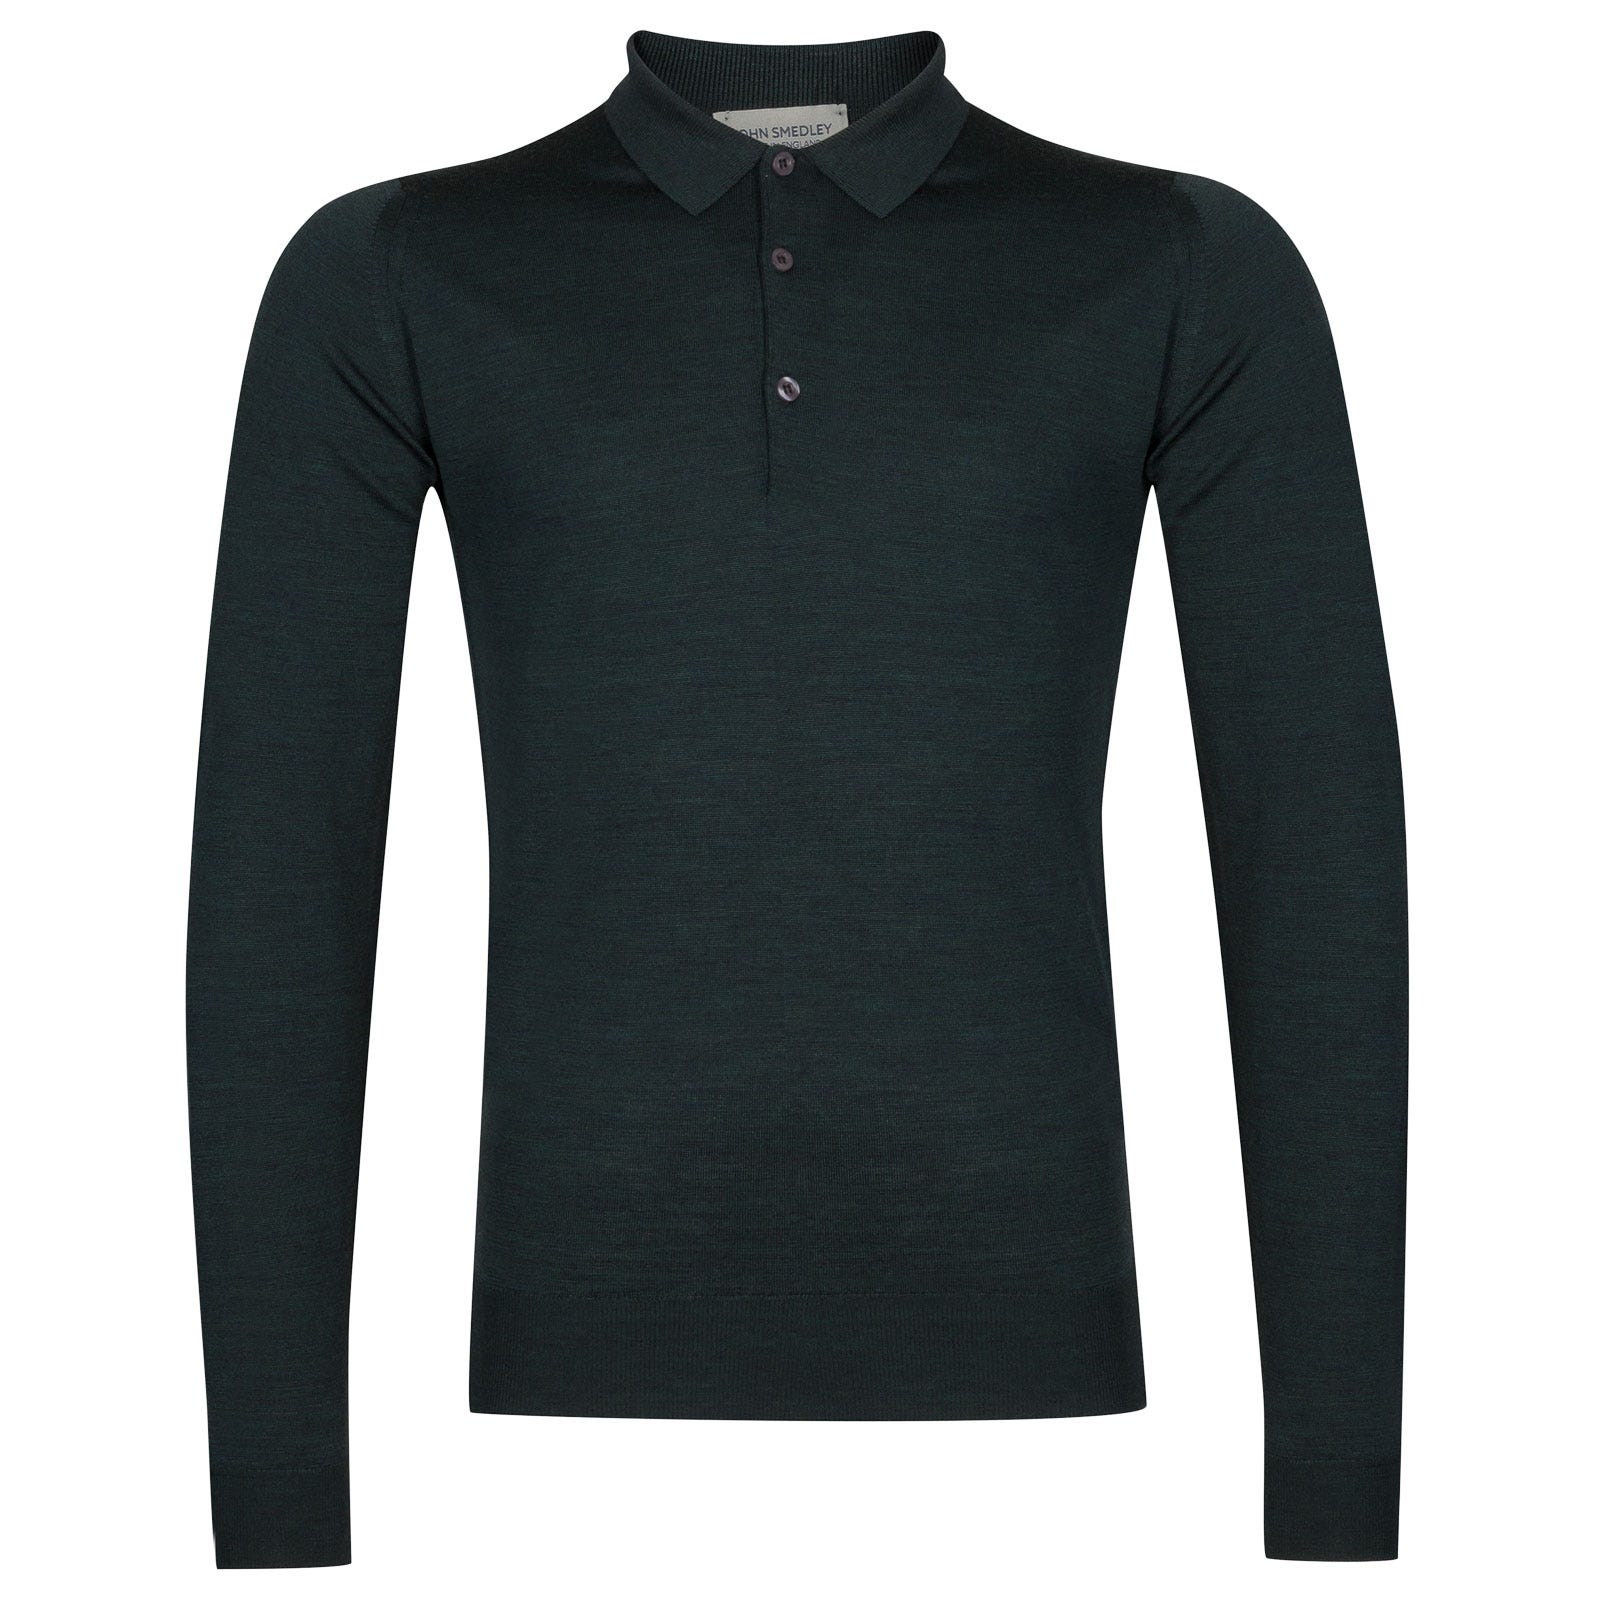 John Smedley belper Merino Wool Shirt in Racing Green-XL